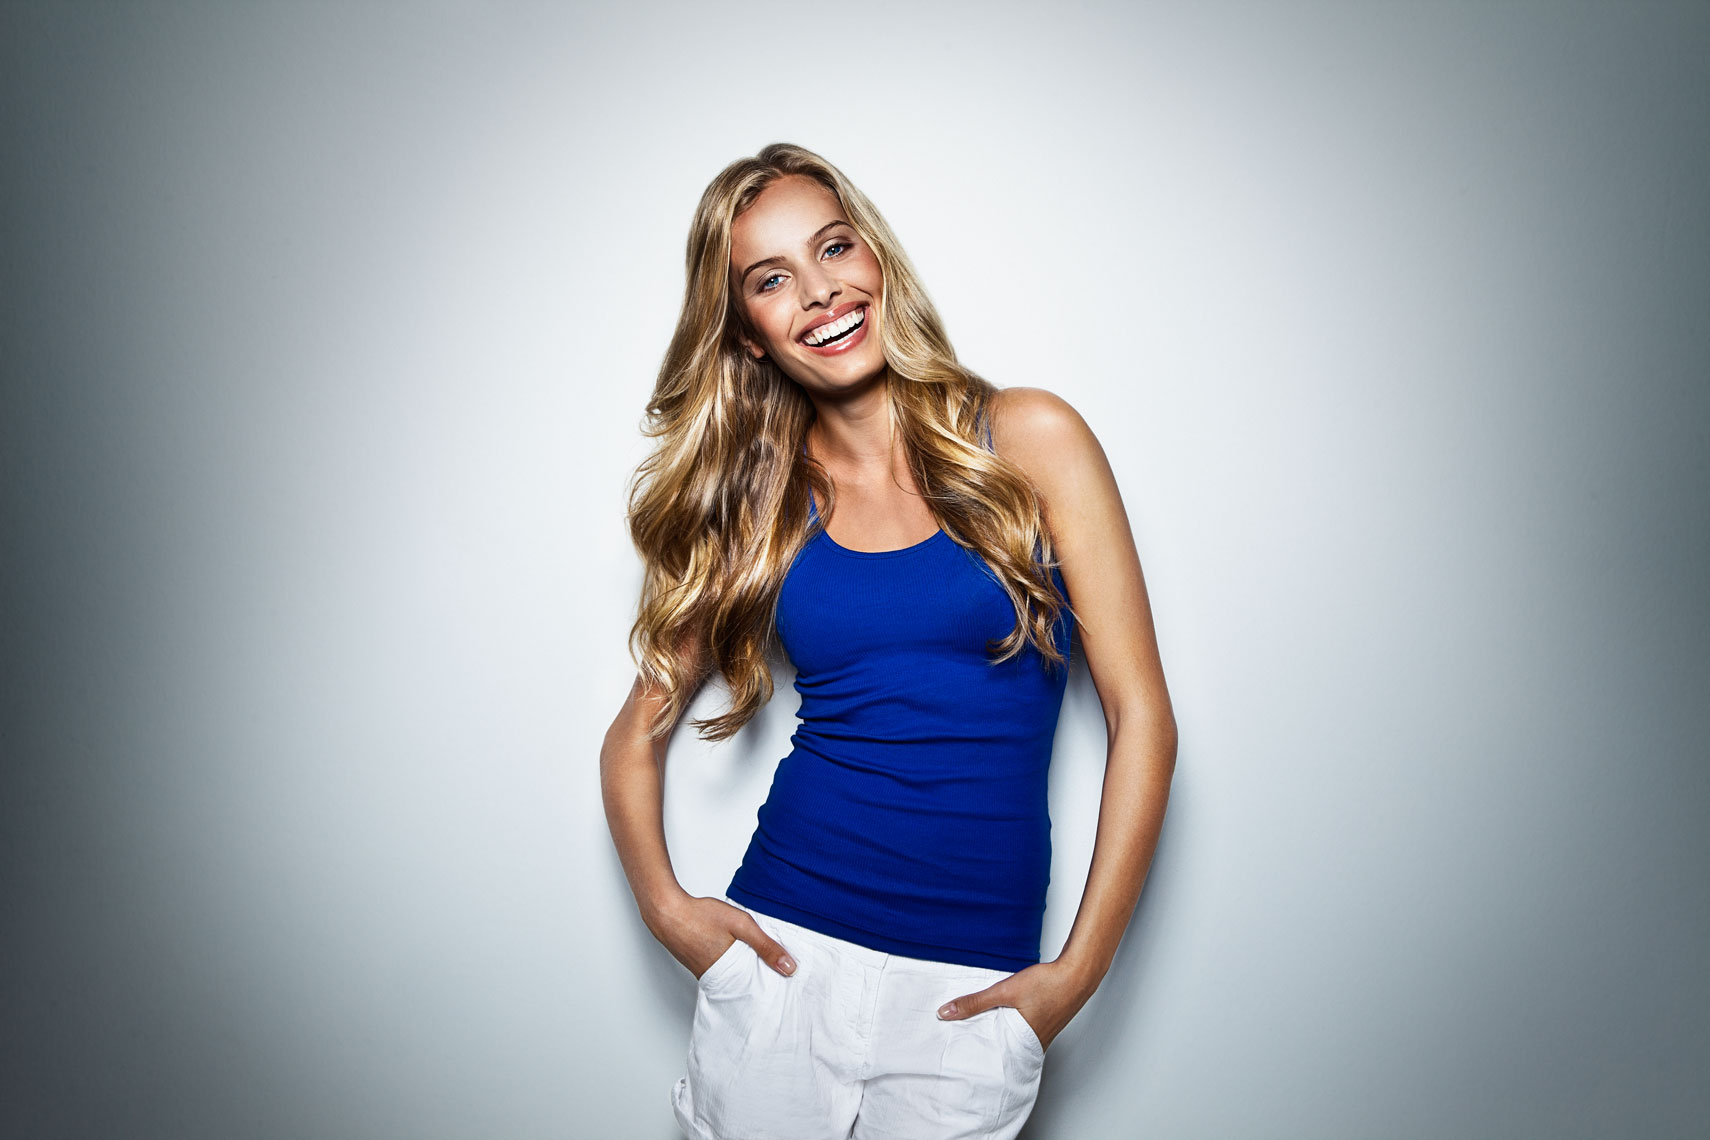 Jana Beller | Germanys Next Topmodel 2011 for Gillette Venus